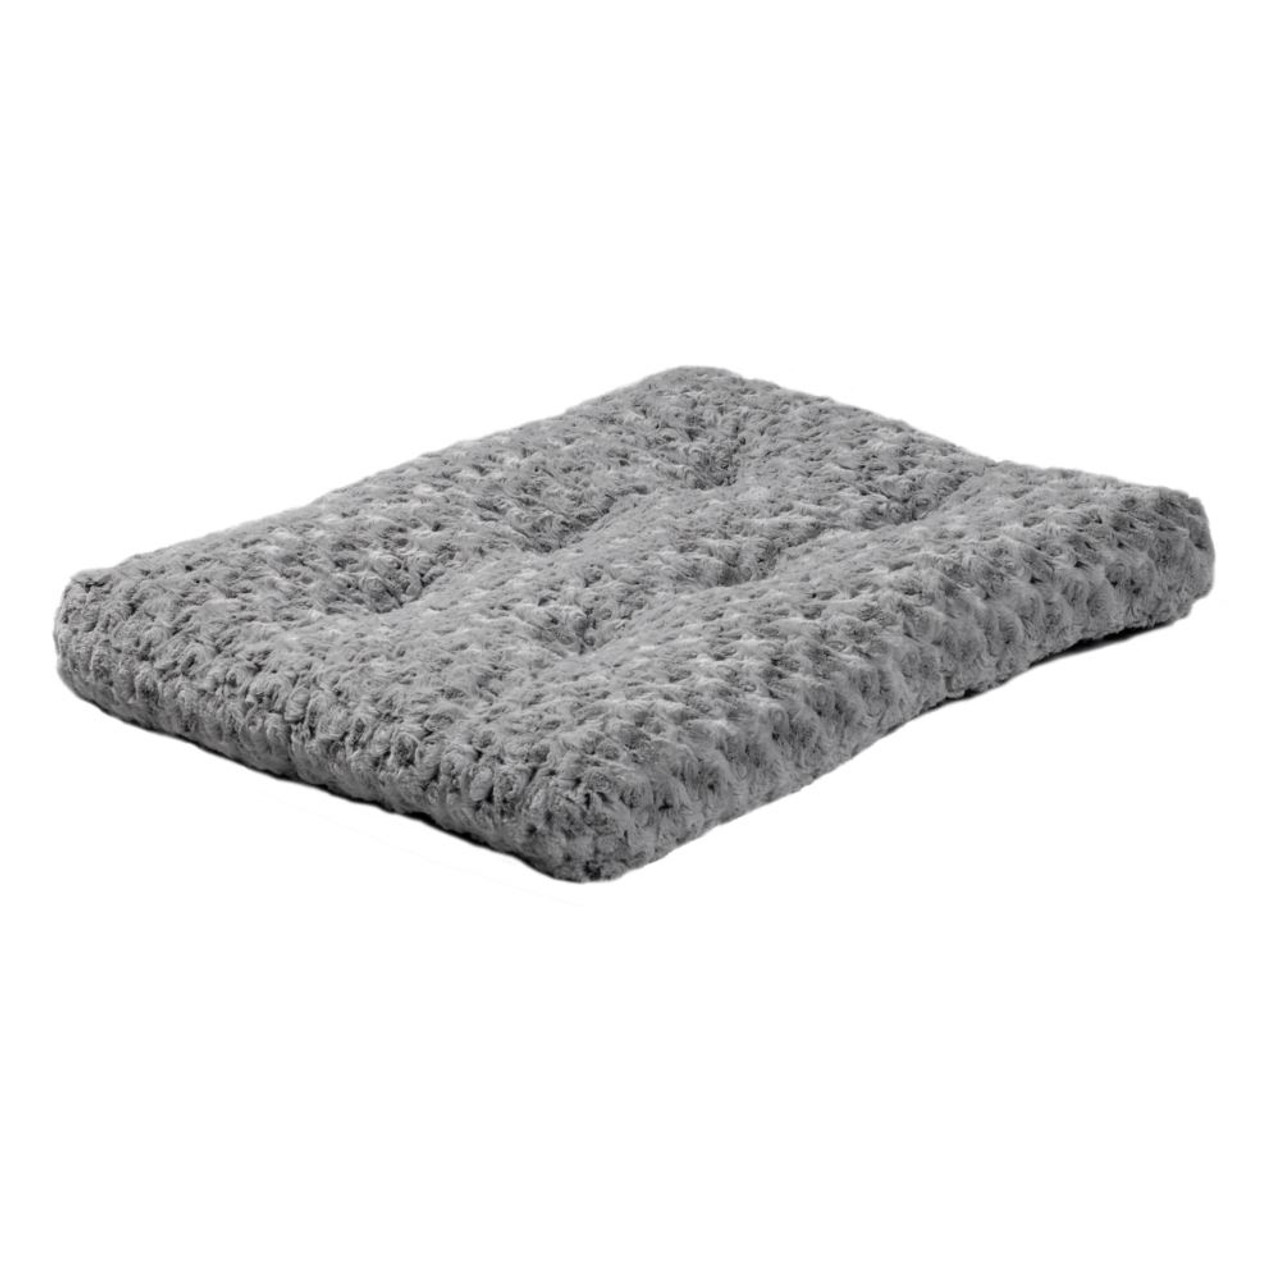 MidWest QuietTime Deluxe Gray Ombre Swirl Pet Bed - Front